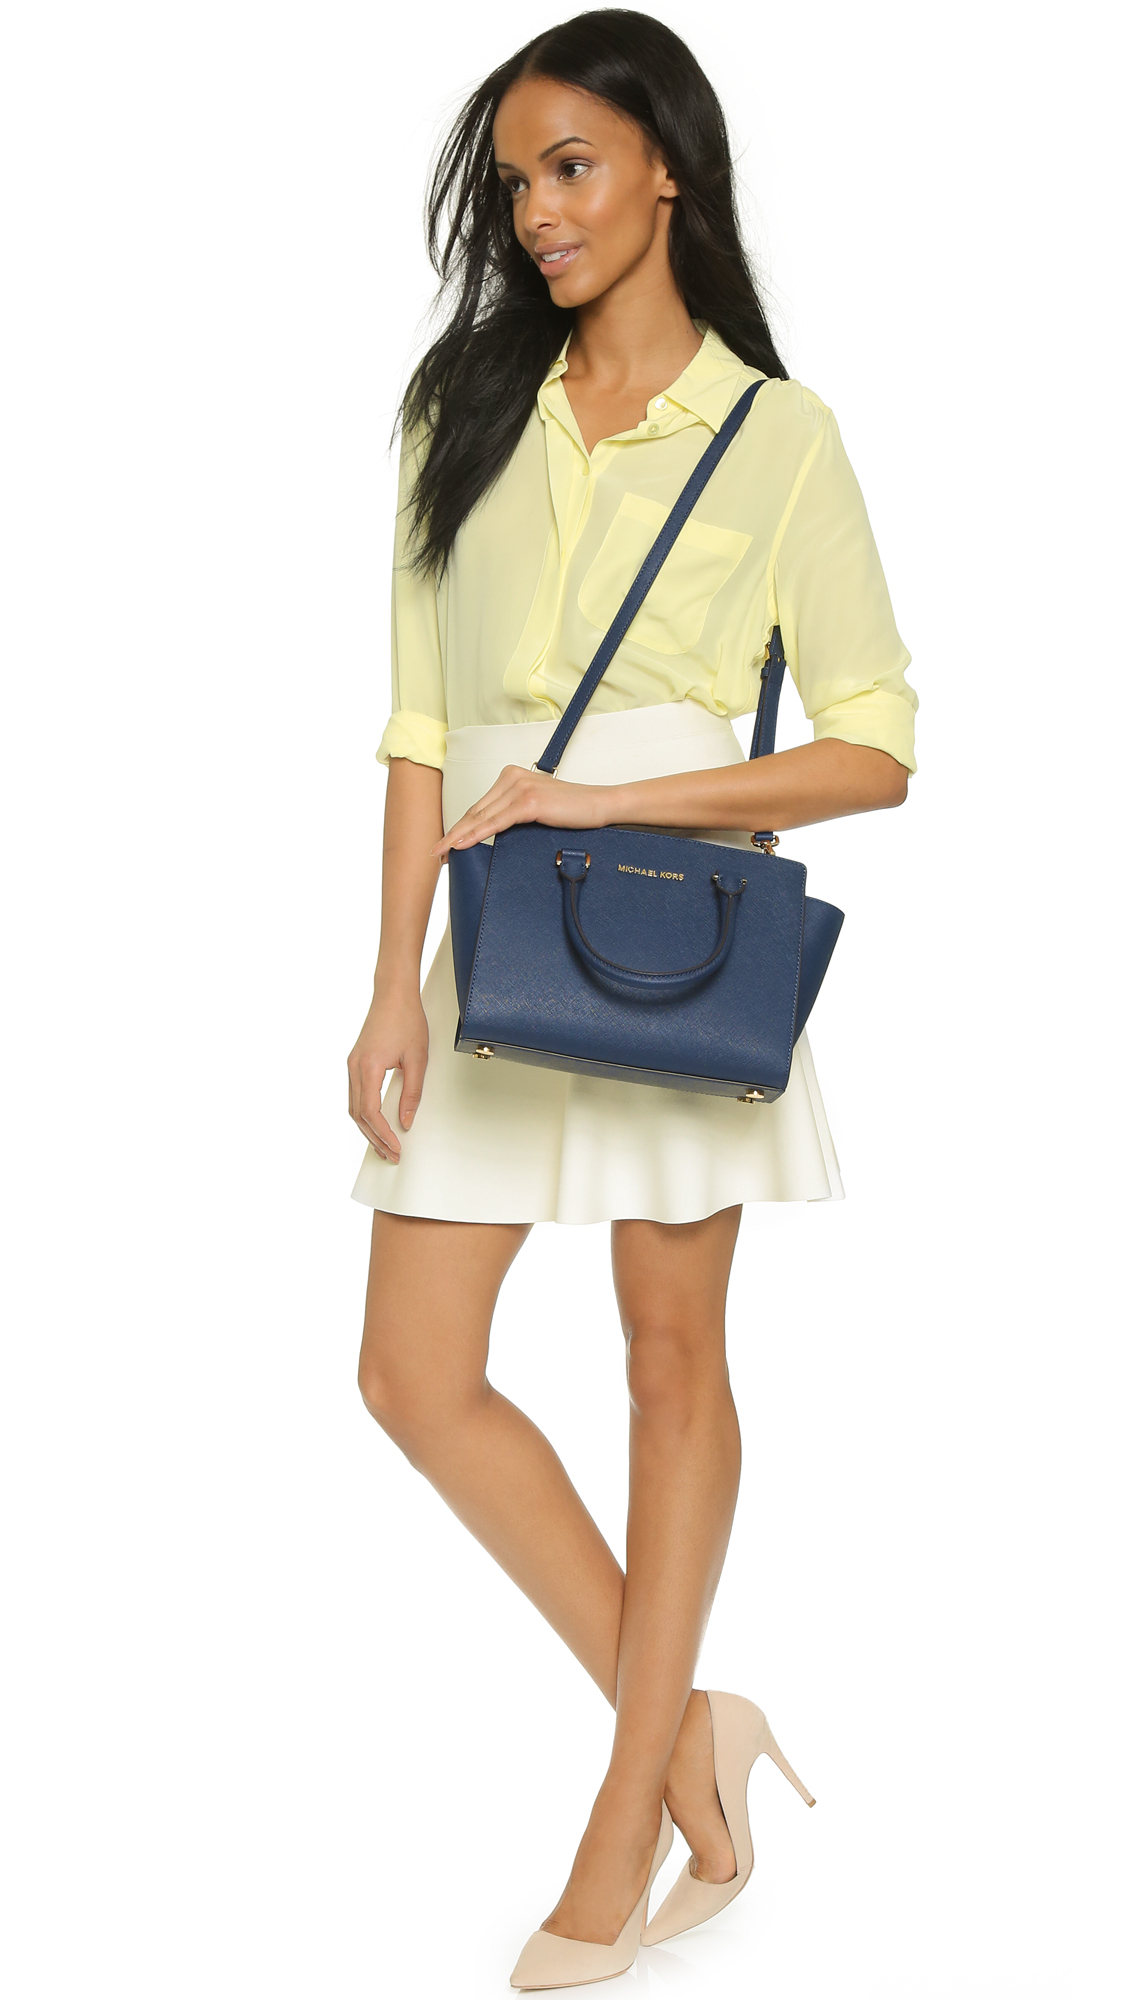 40a62f265 Gallery. Previously sold at: Shopbop · Women's MICHAEL Michael Kors Selma